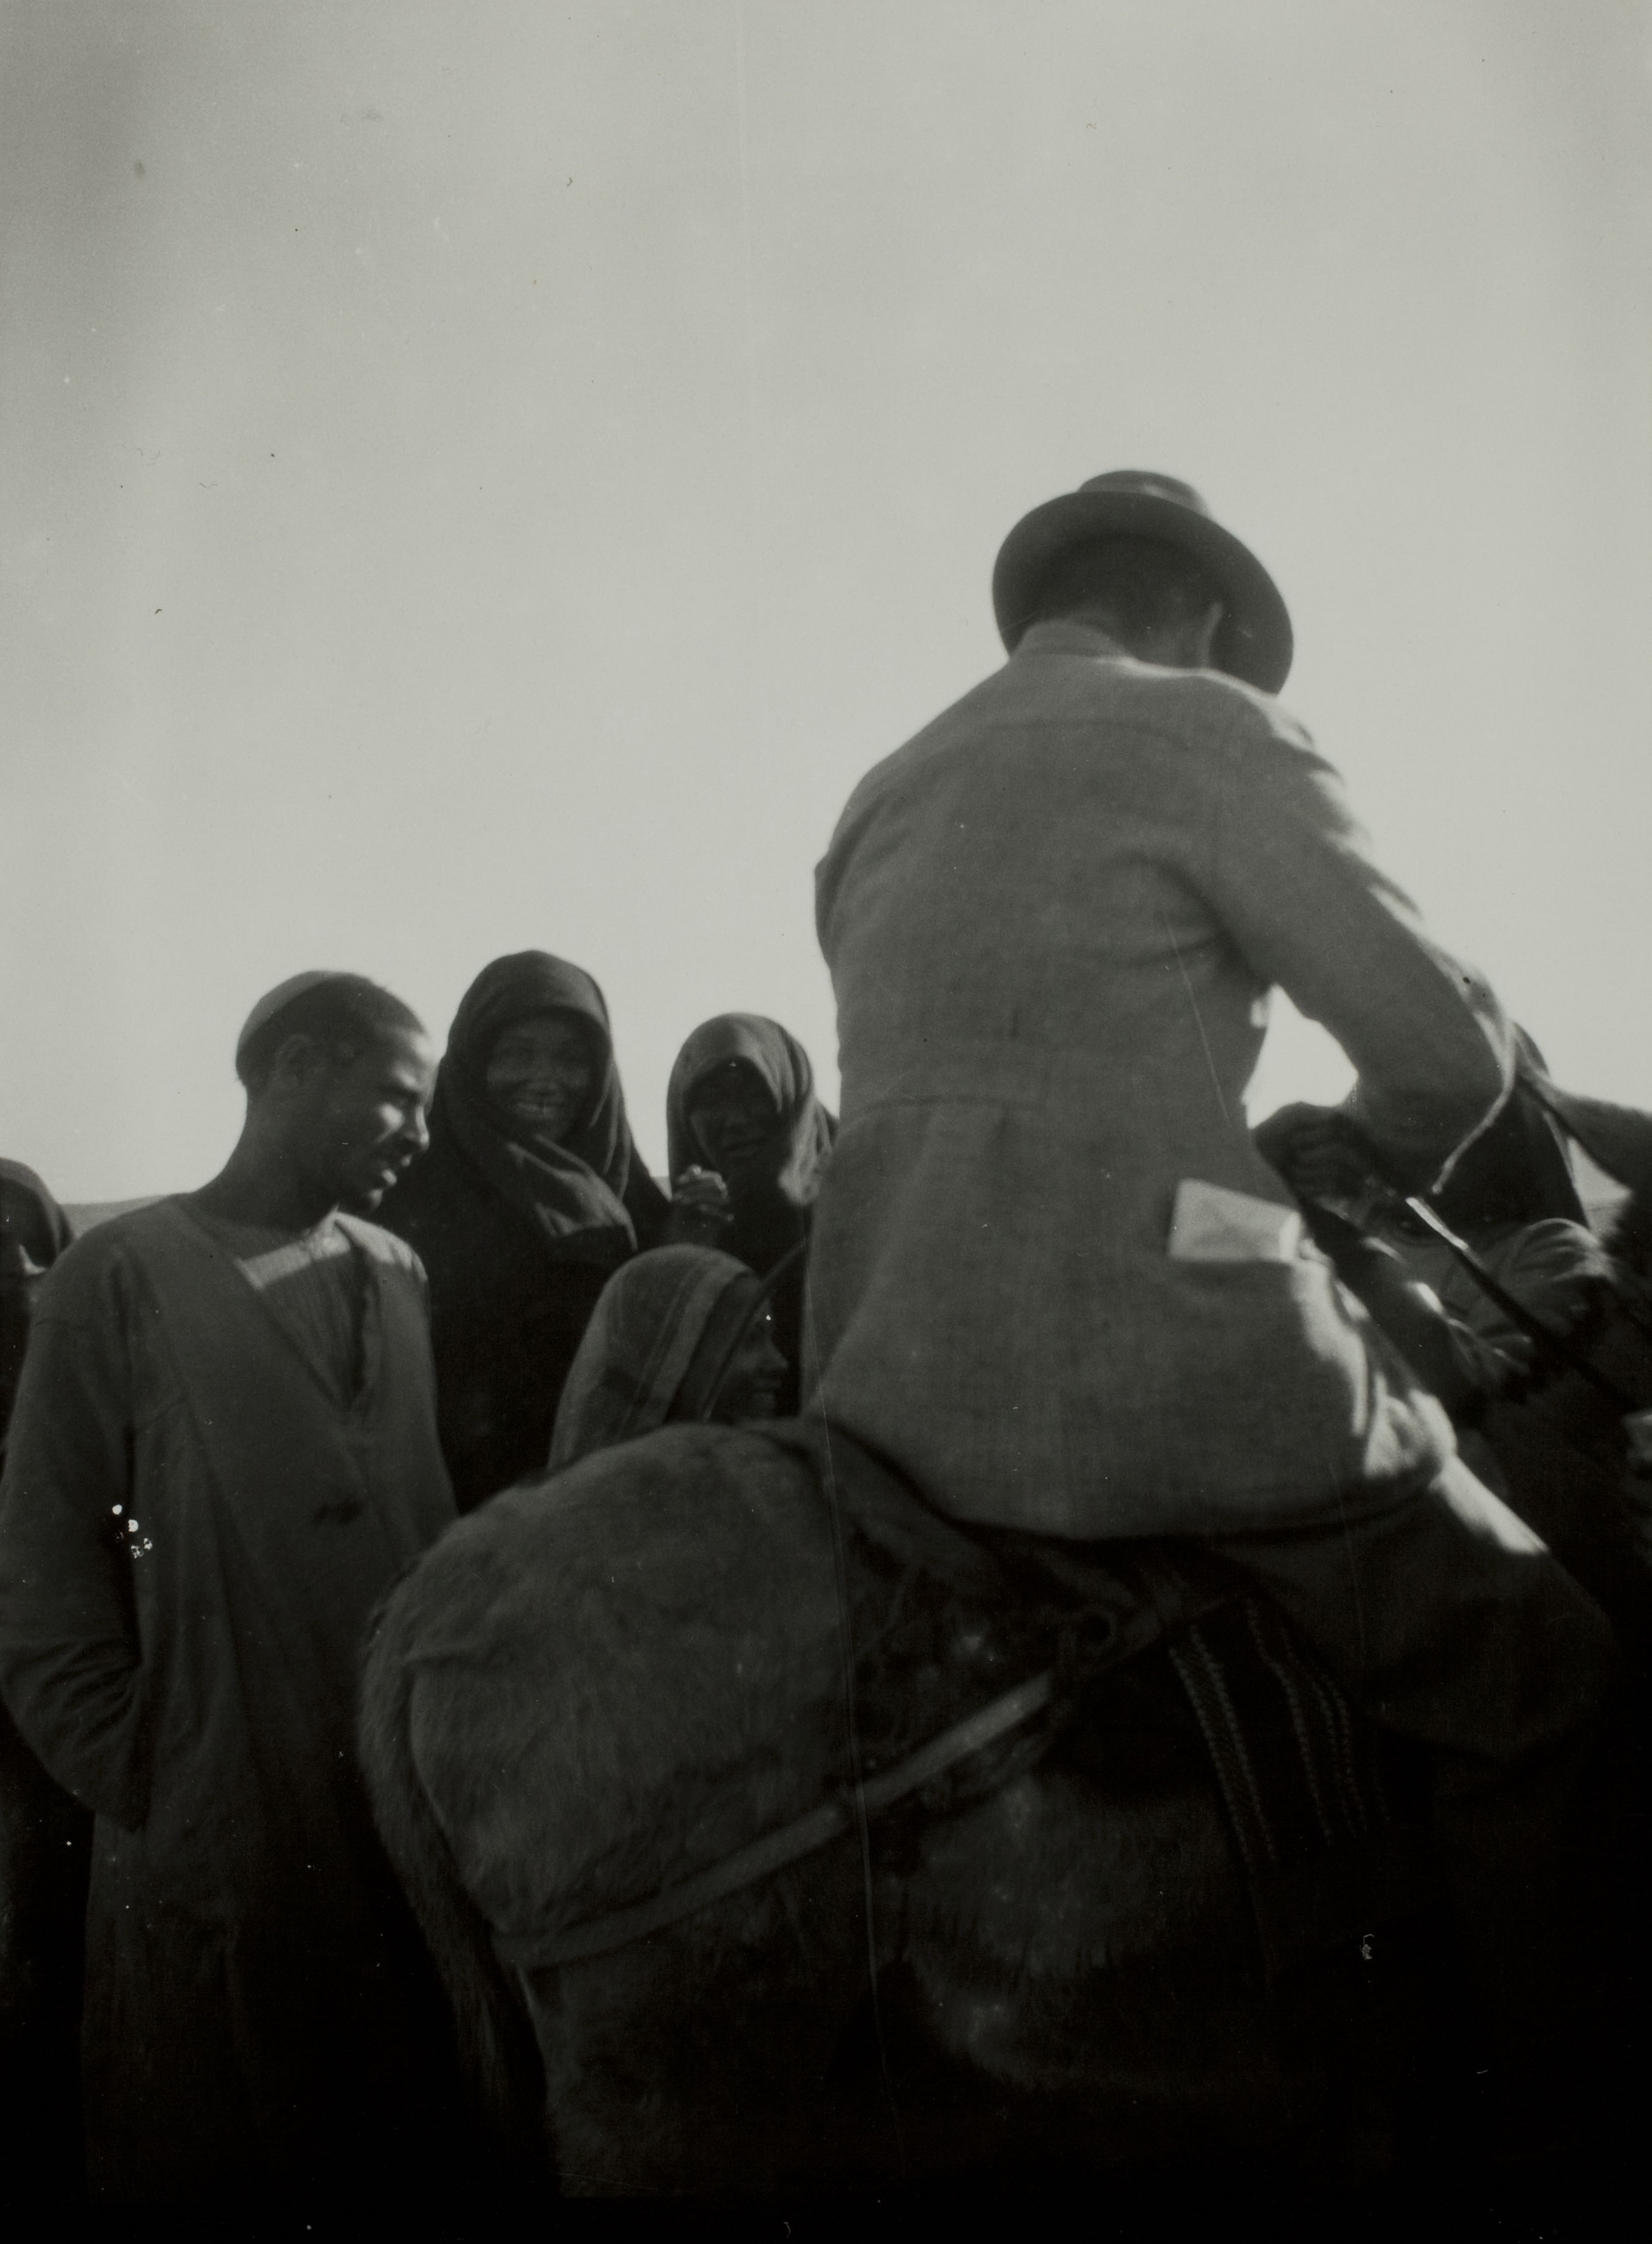 Thomas Whittemore on a camel in Egypt